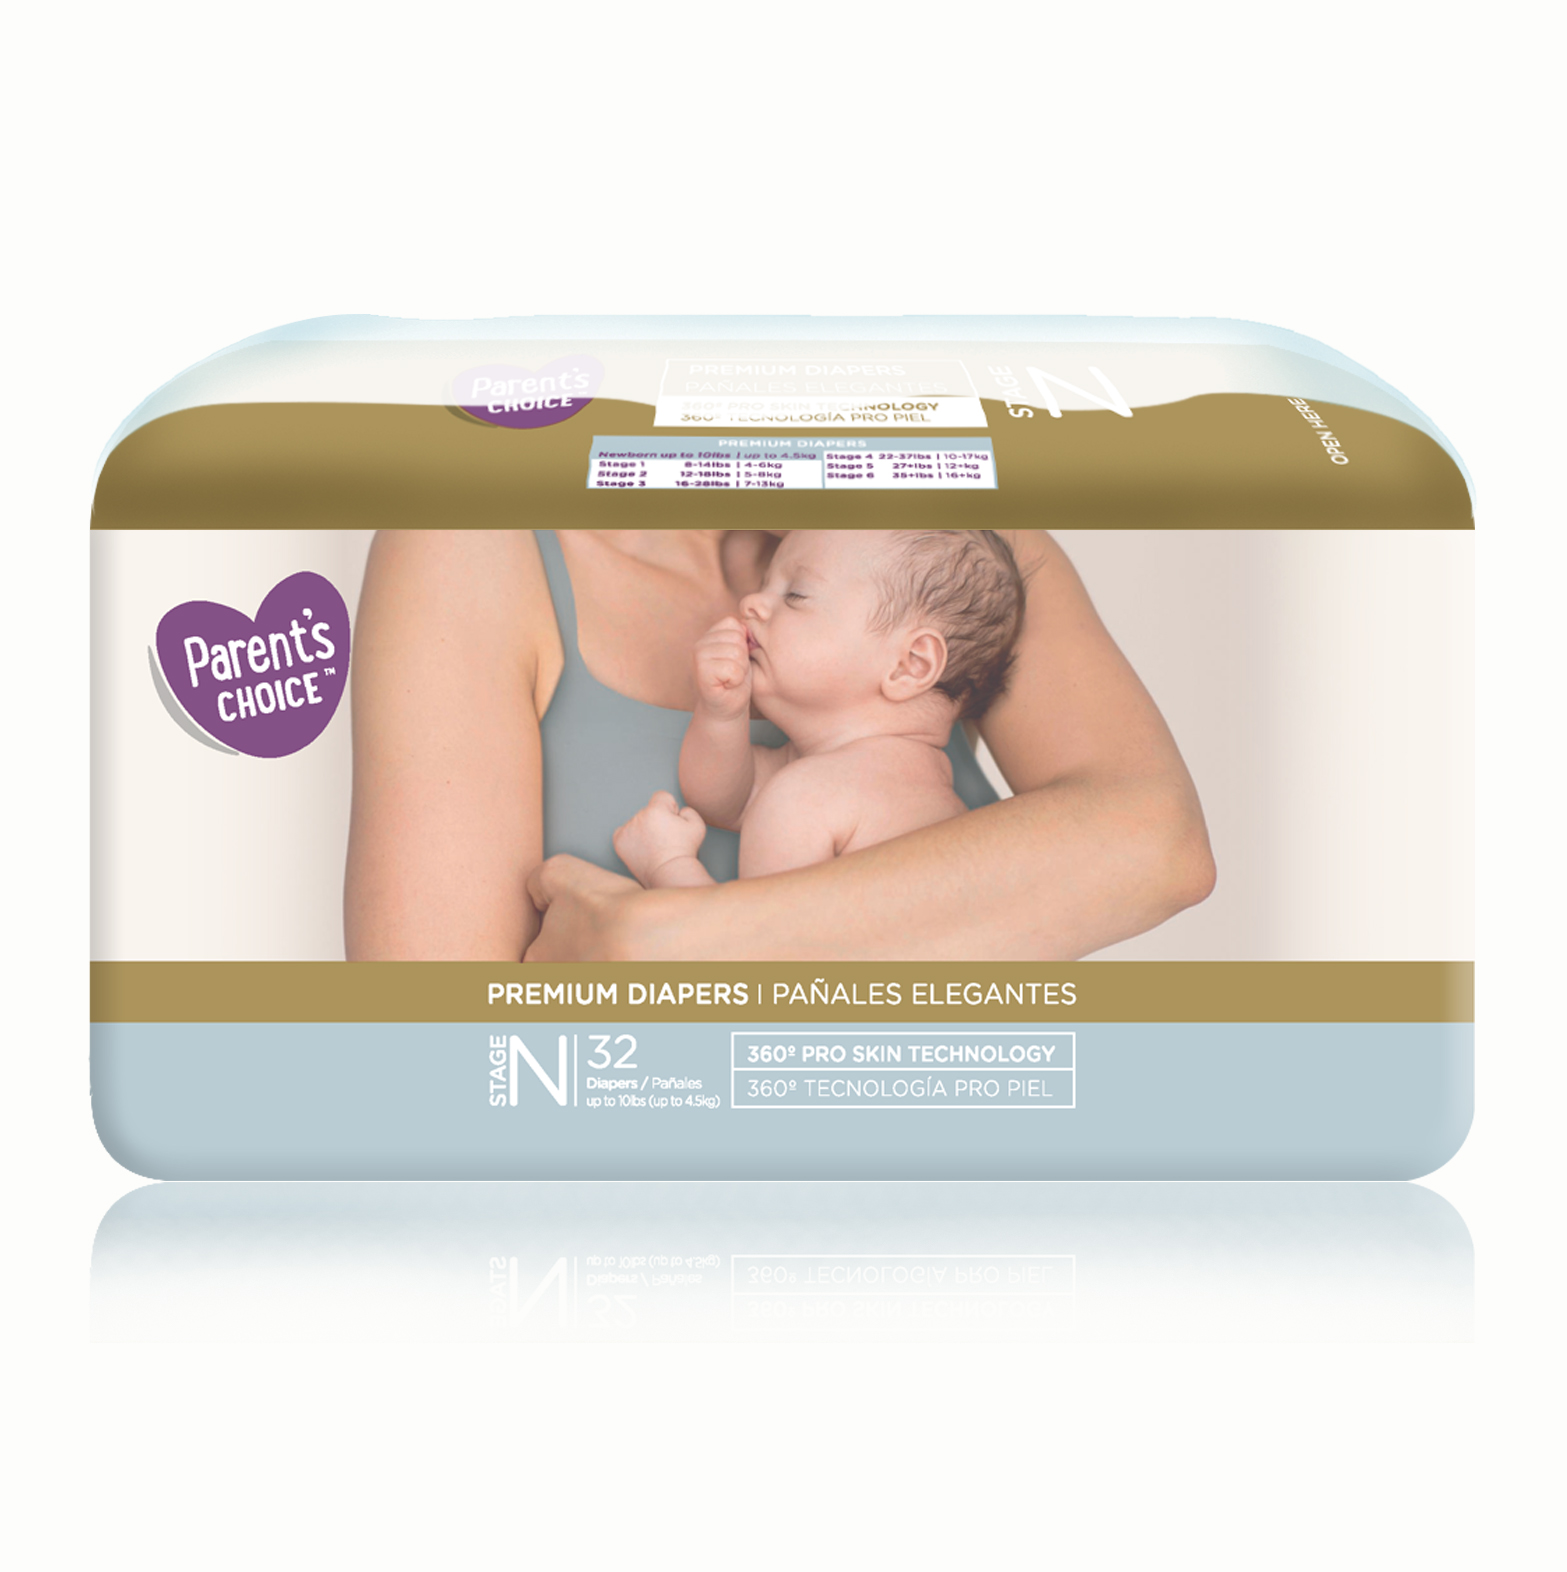 Parent's Choice Premium Diapers, Newborn, 32 Diapers